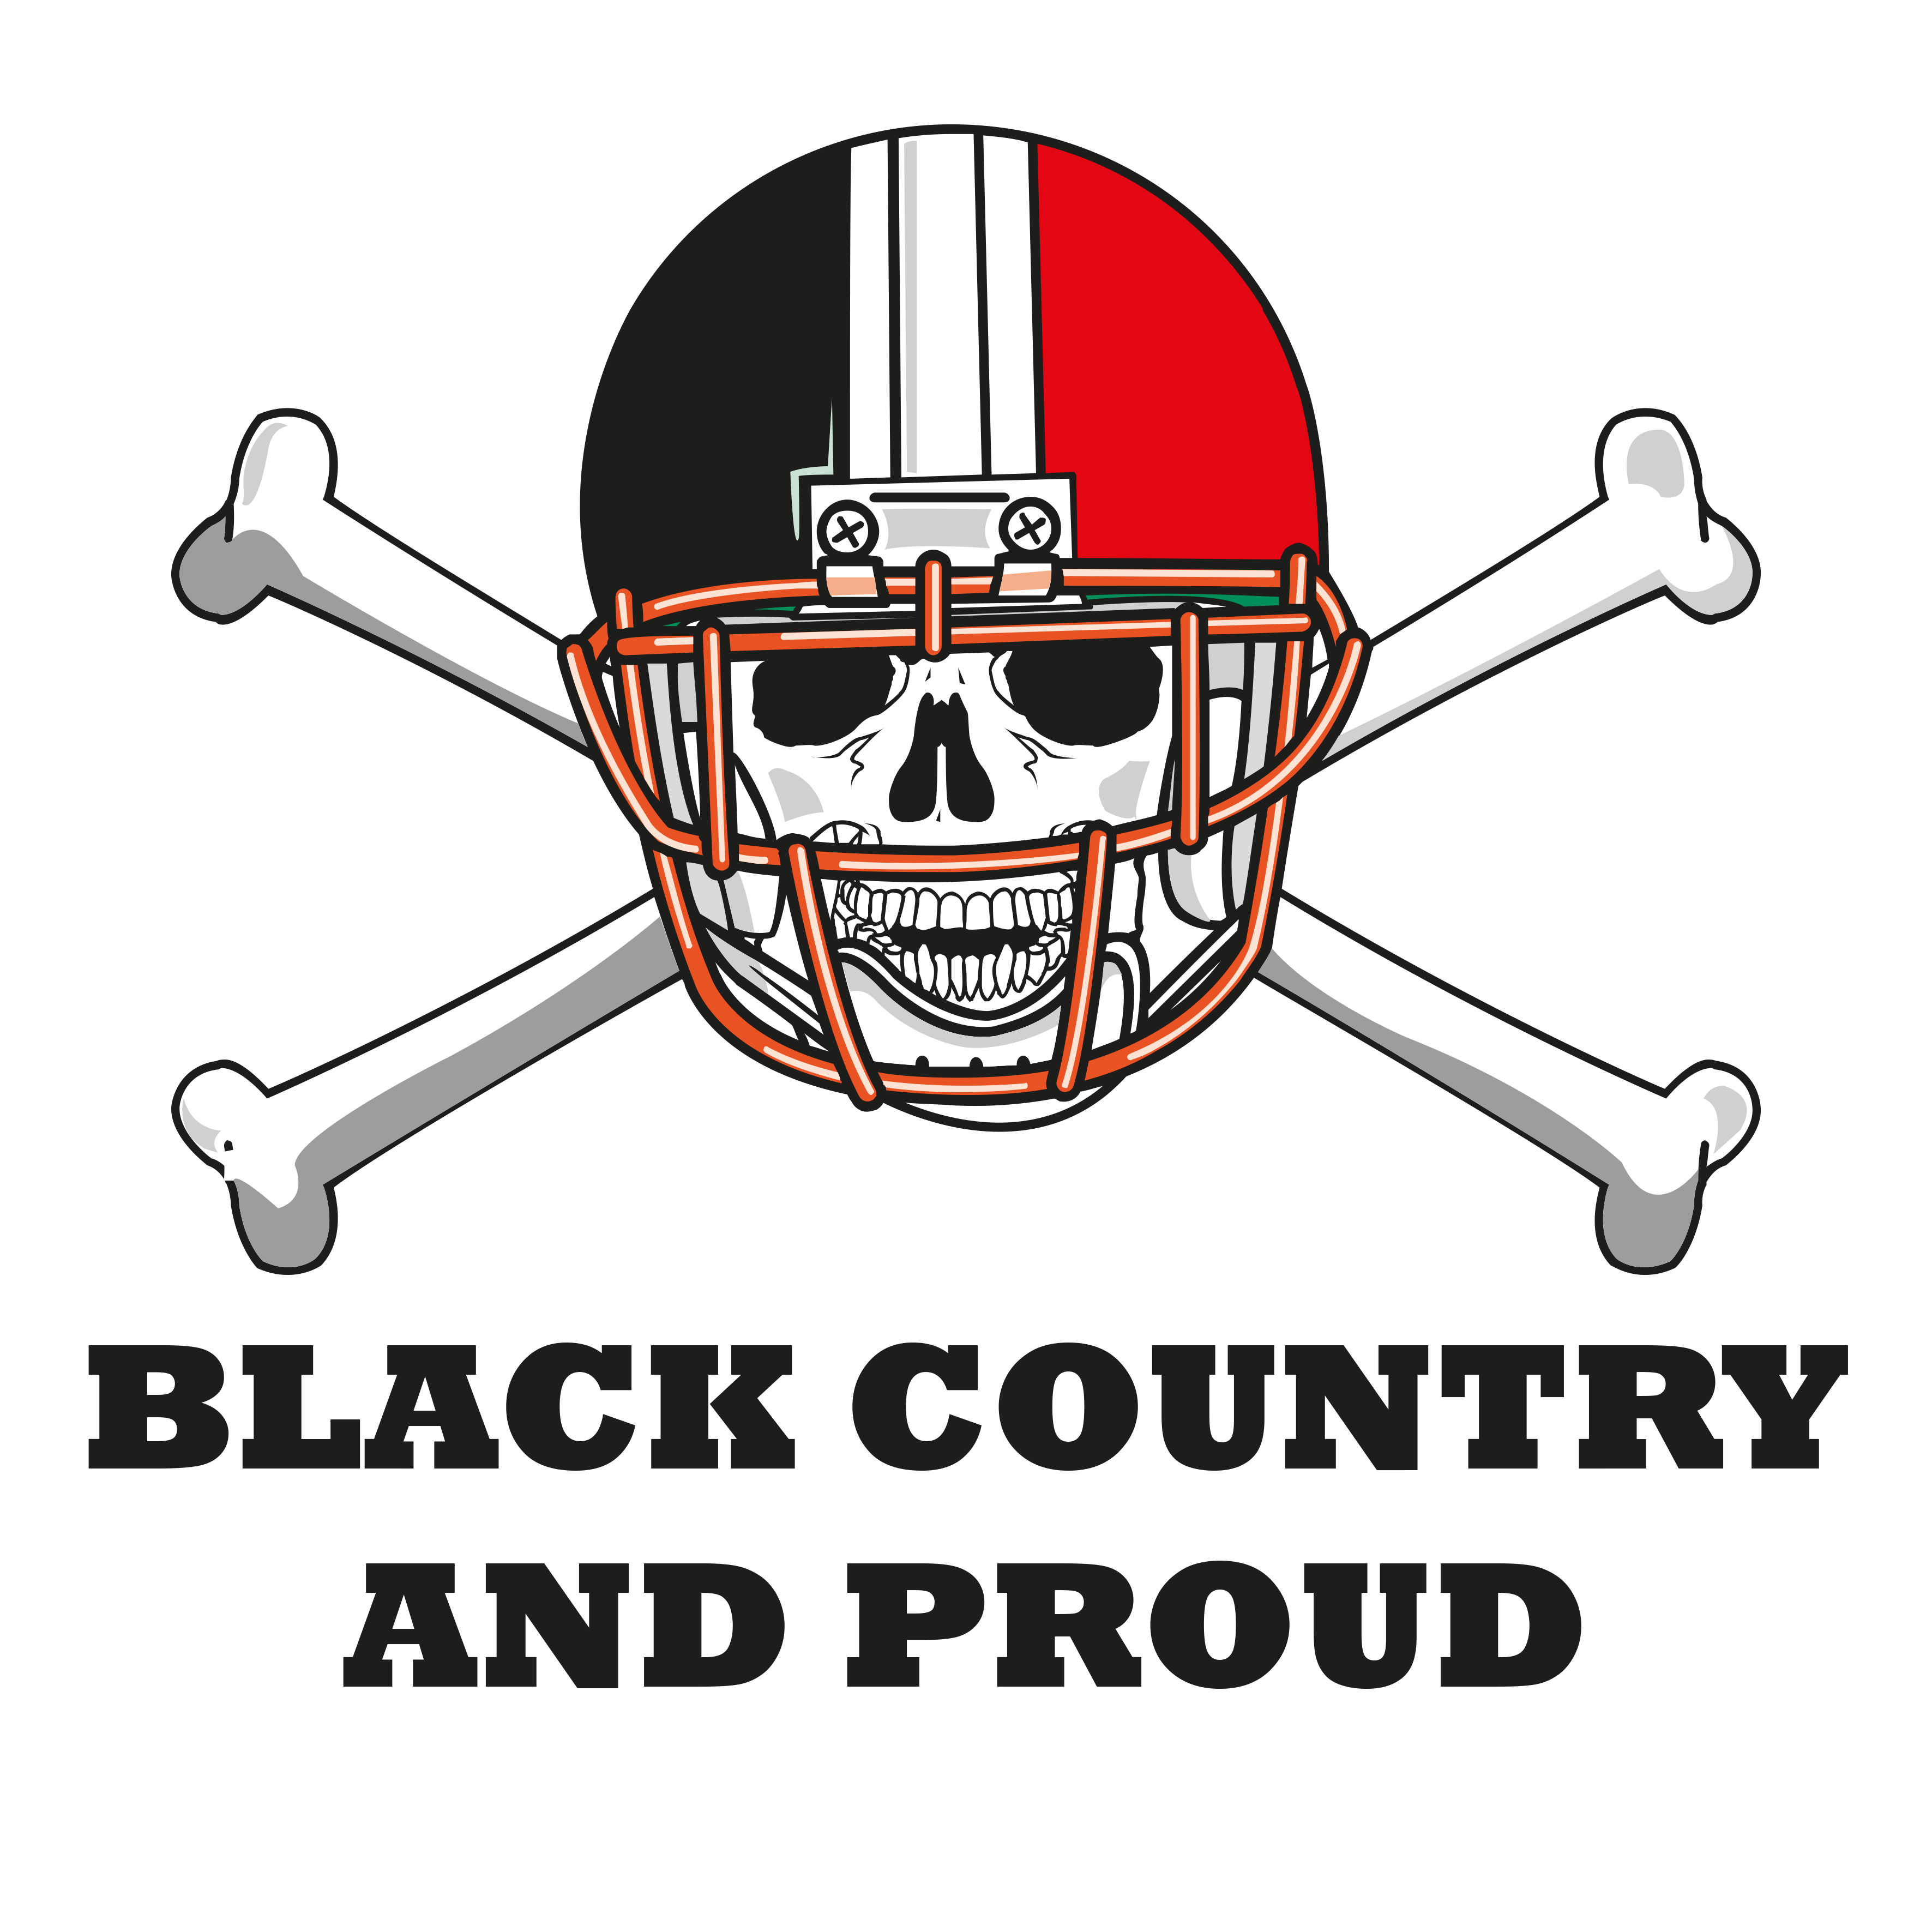 BLC001 - Skull Helmet Black Country And Proud